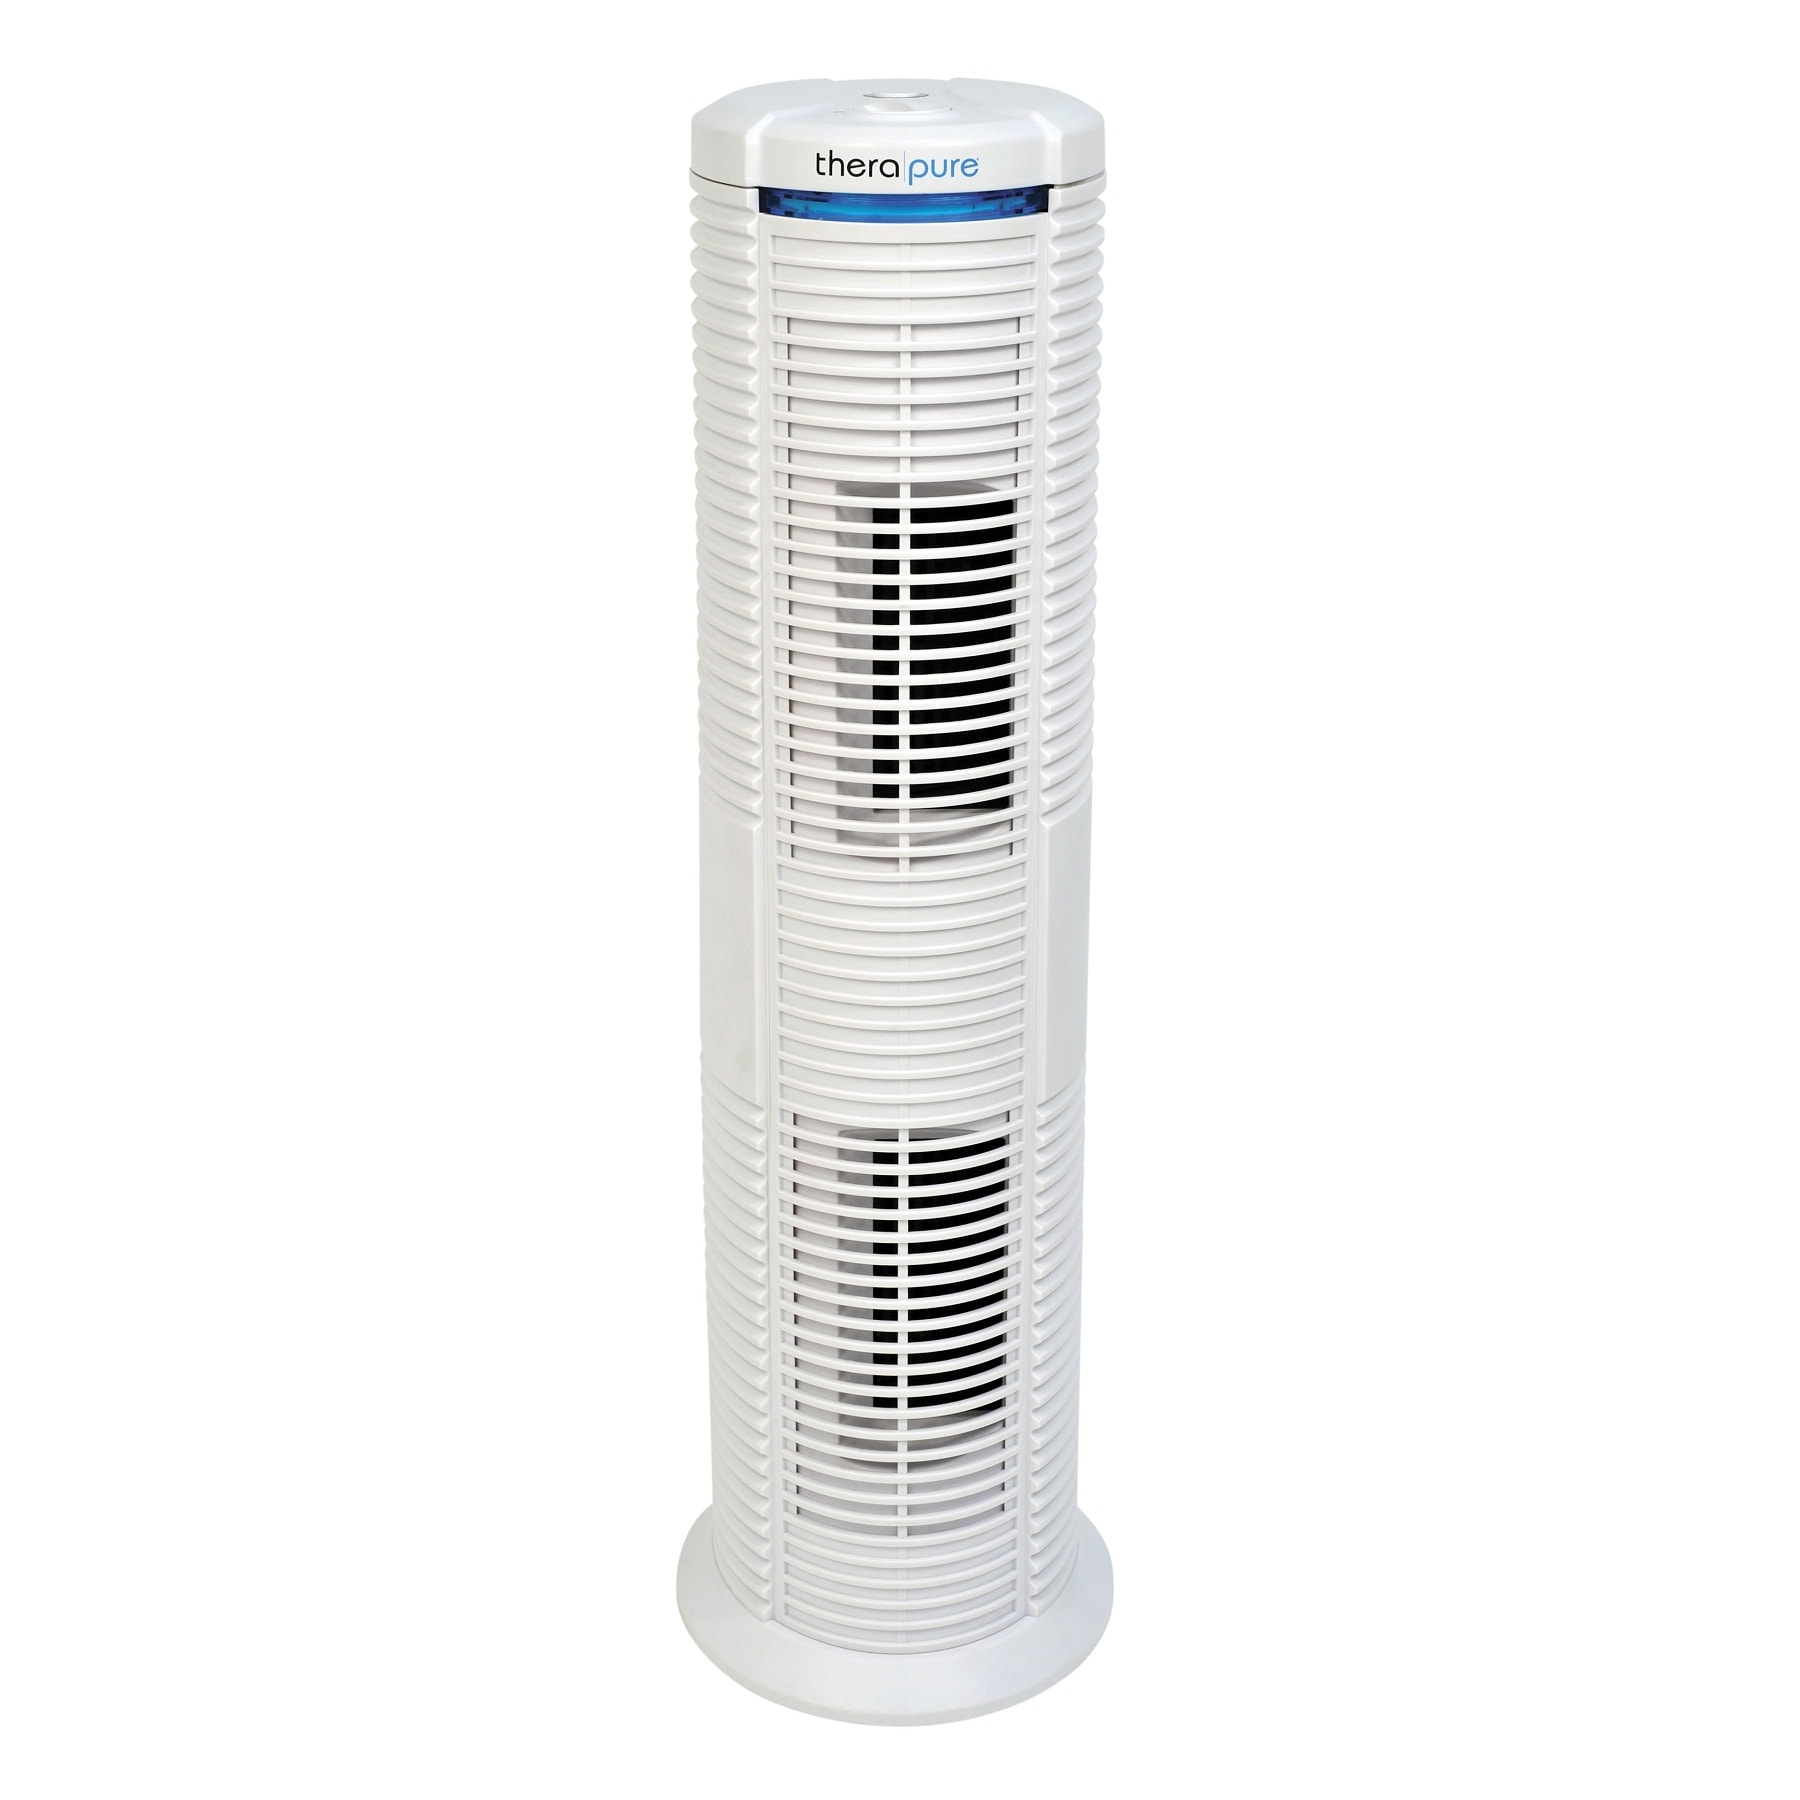 Envion TPP240 Therapure Air Purifier